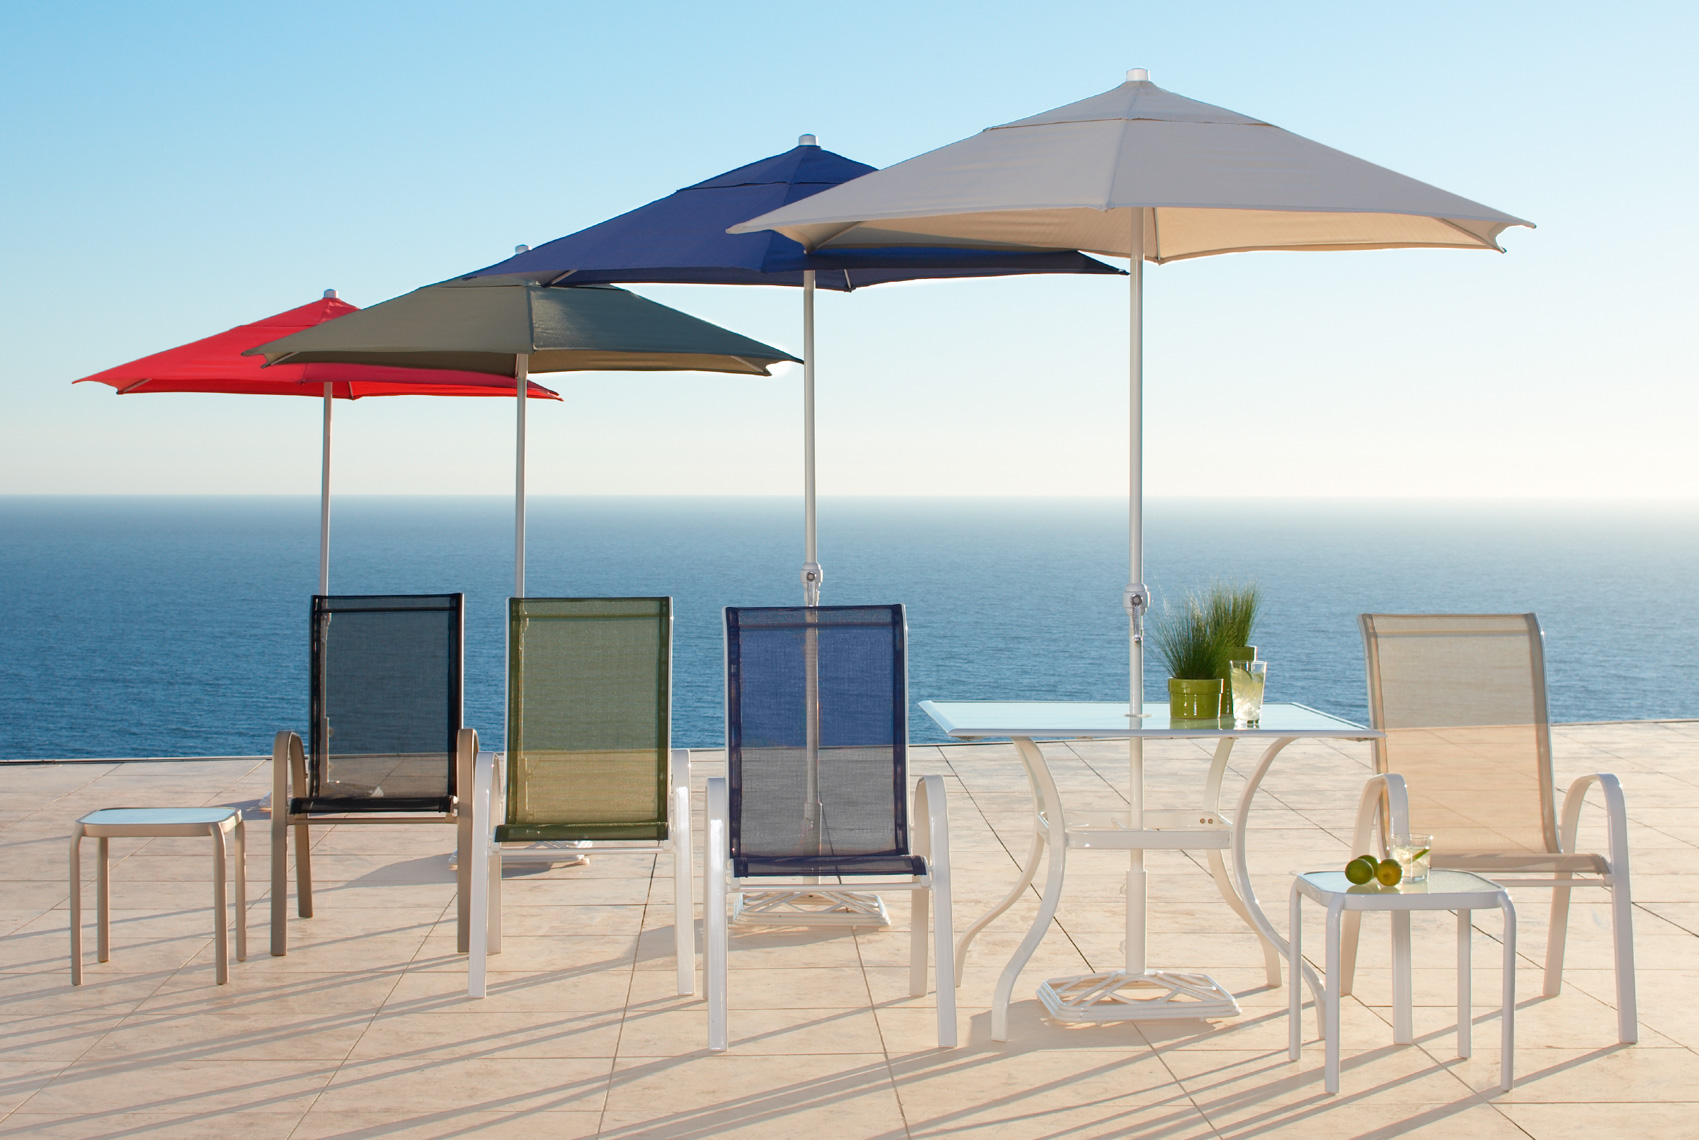 Modern chairs and umbrellas on outdoor patio near ocean